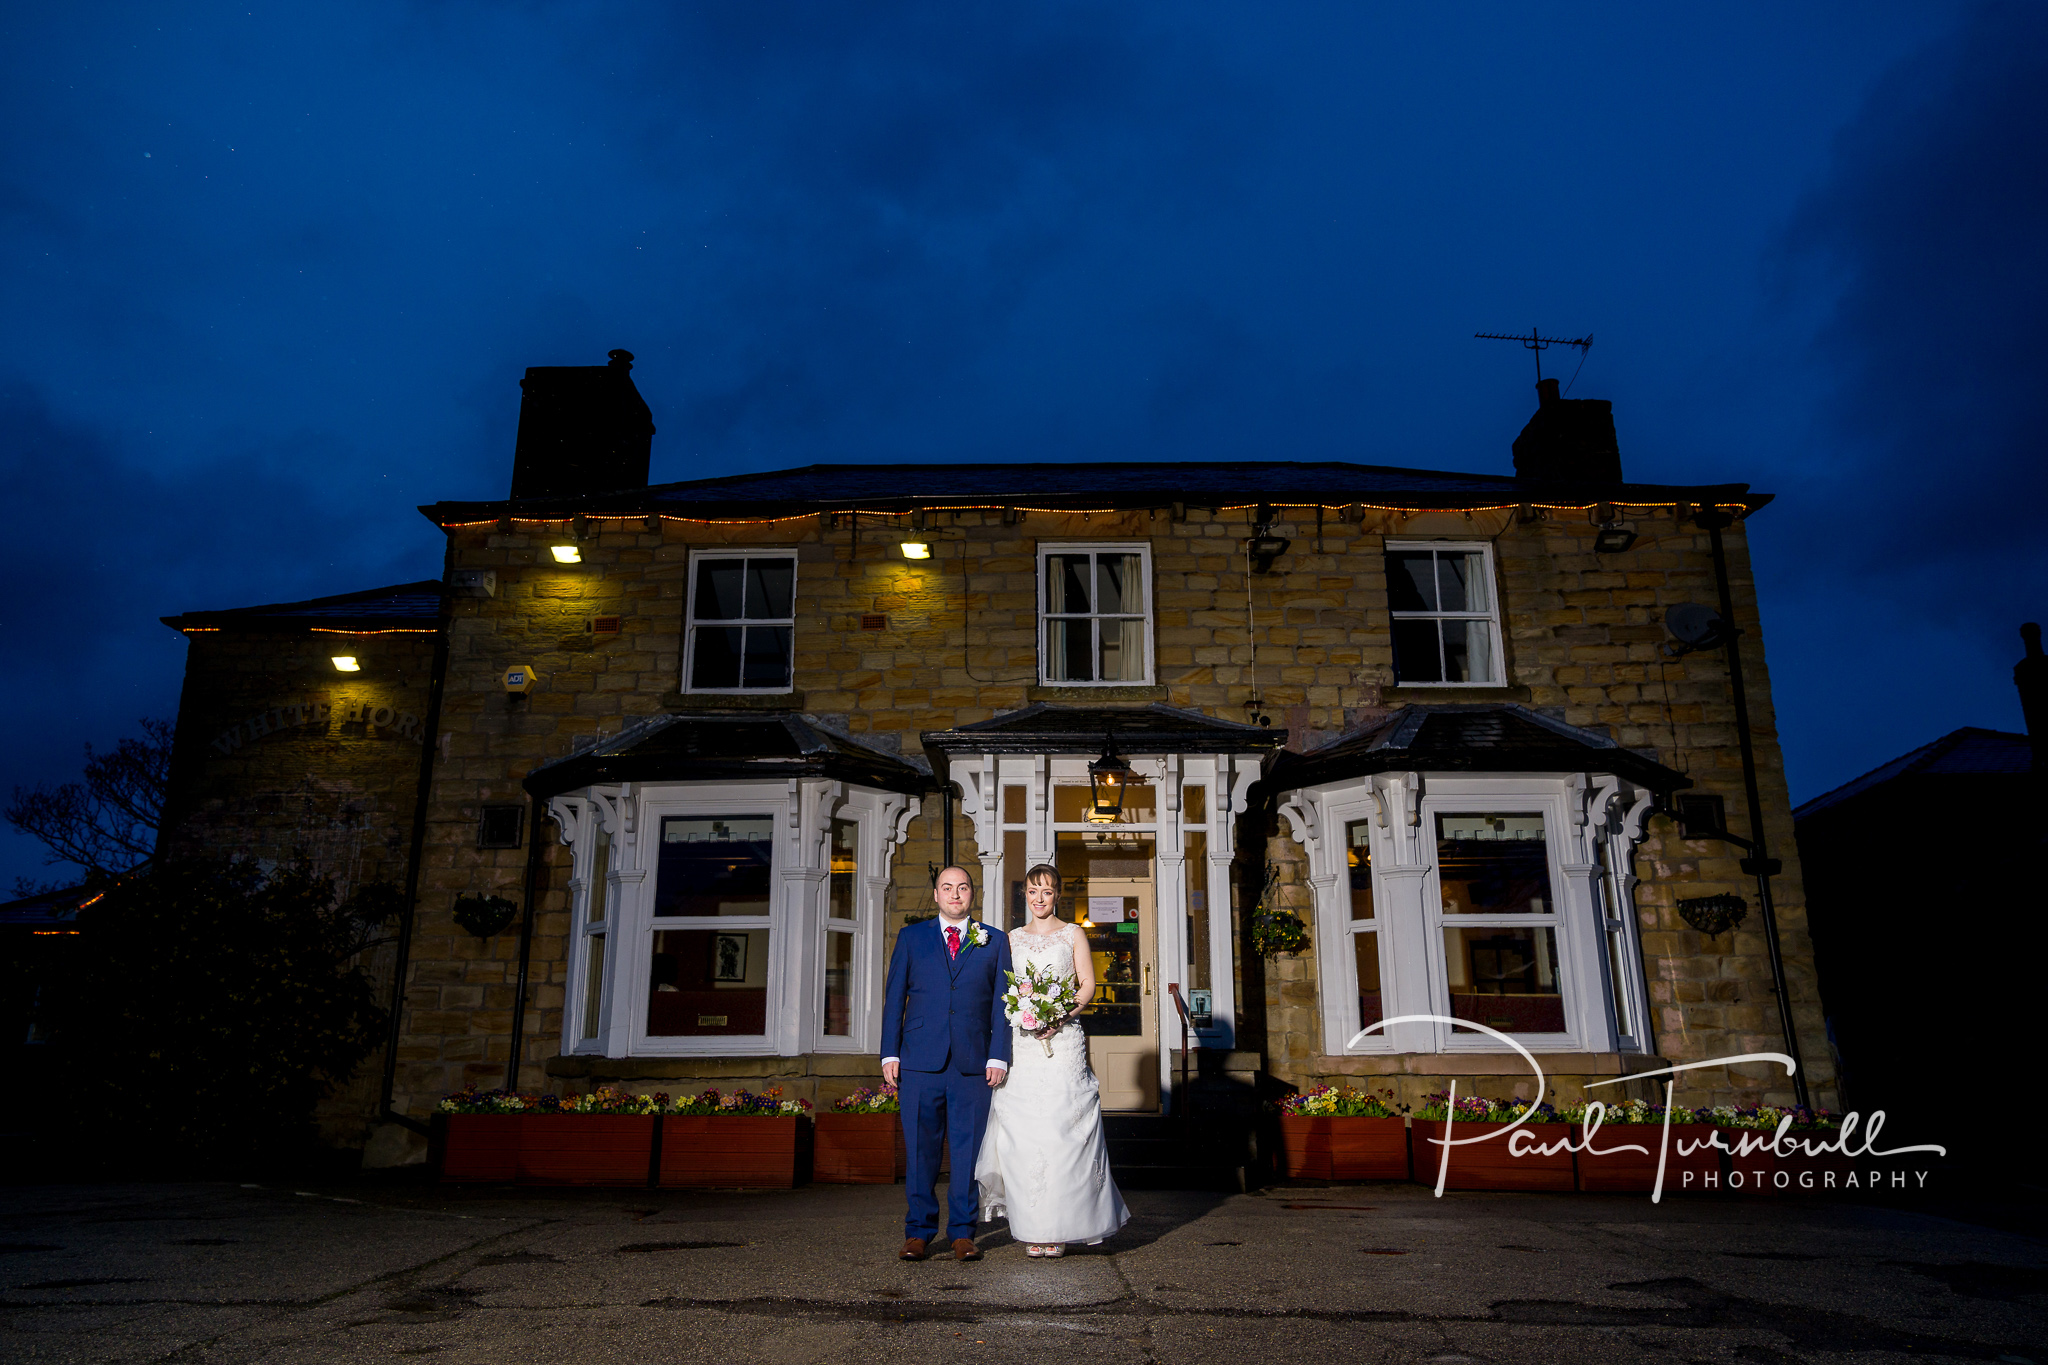 wedding-photographer-pontefract-yorkshire-laura-keanu-061.jpg